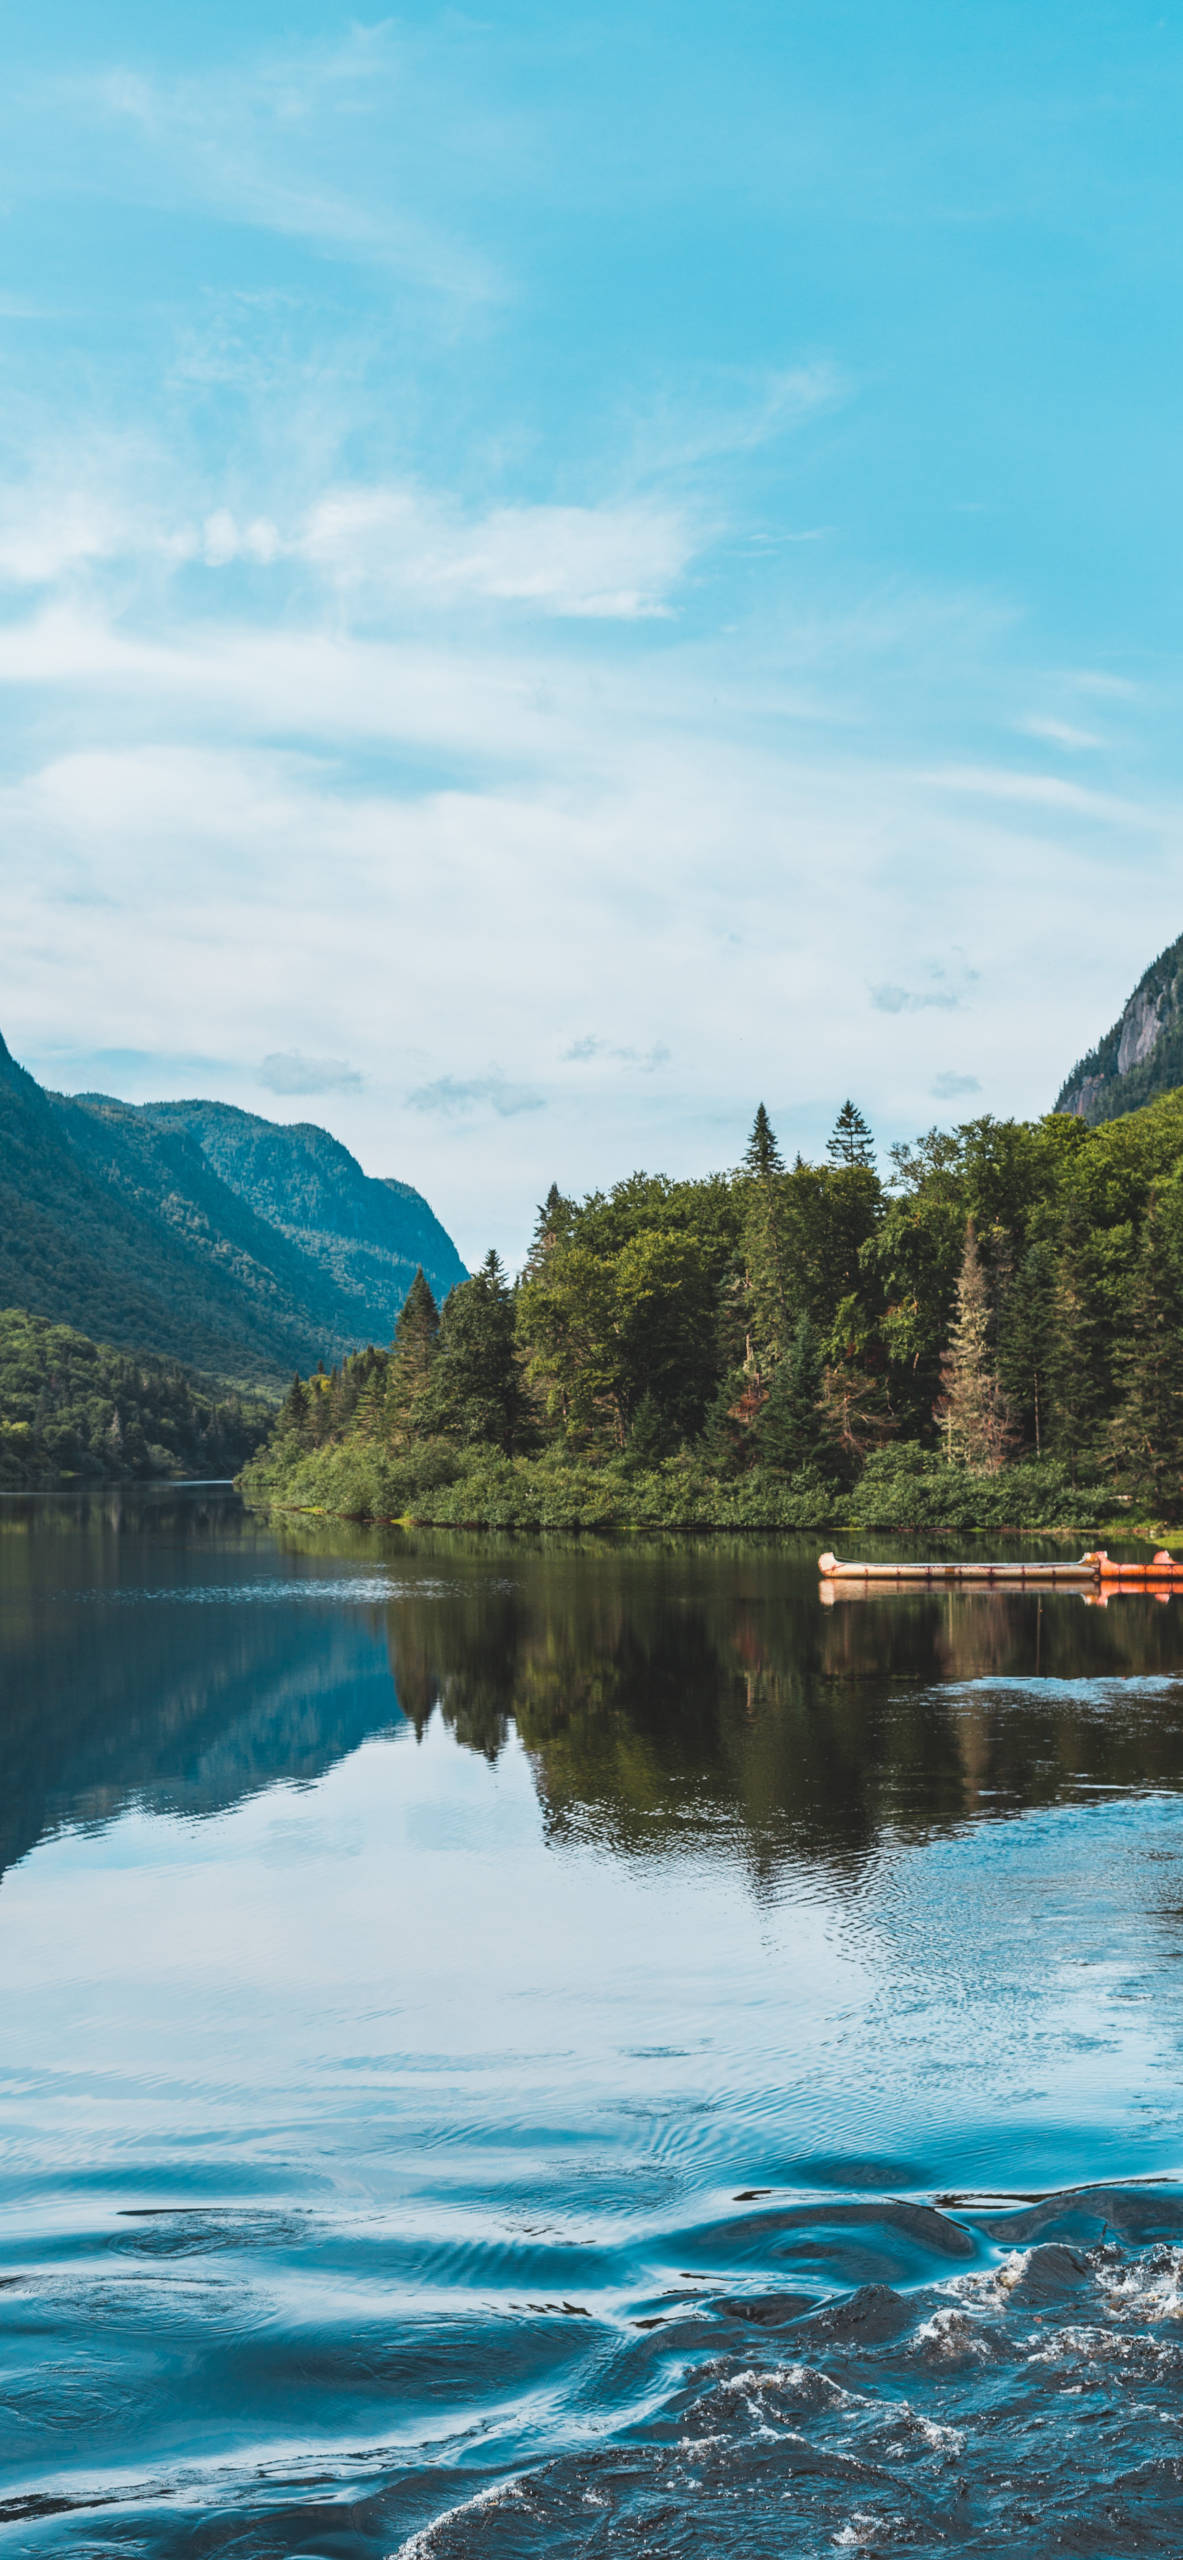 iPhone wallpapers lake jacques cartier national park Lake